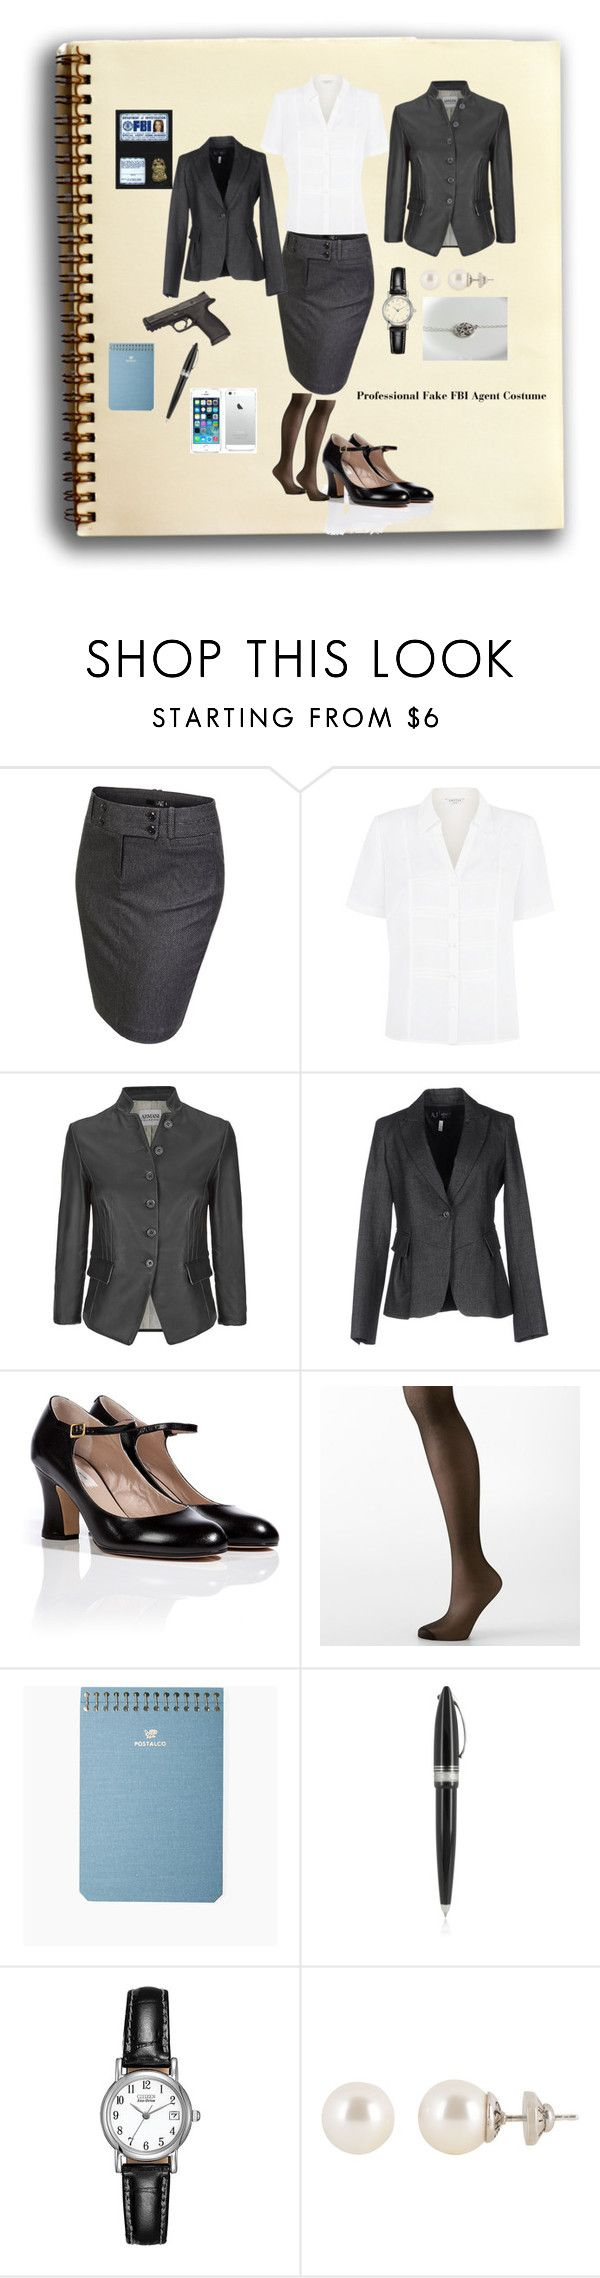 """FBI AGENT OUTFIT"" by sarahebaker ❤ liked on Polyvore featuring ANGELINA, J.TOMSON, Eastex, Armani Collezioni, Armani Jeans, Marc Jacobs, Hanes, Postalco, Pineider and Citizen"